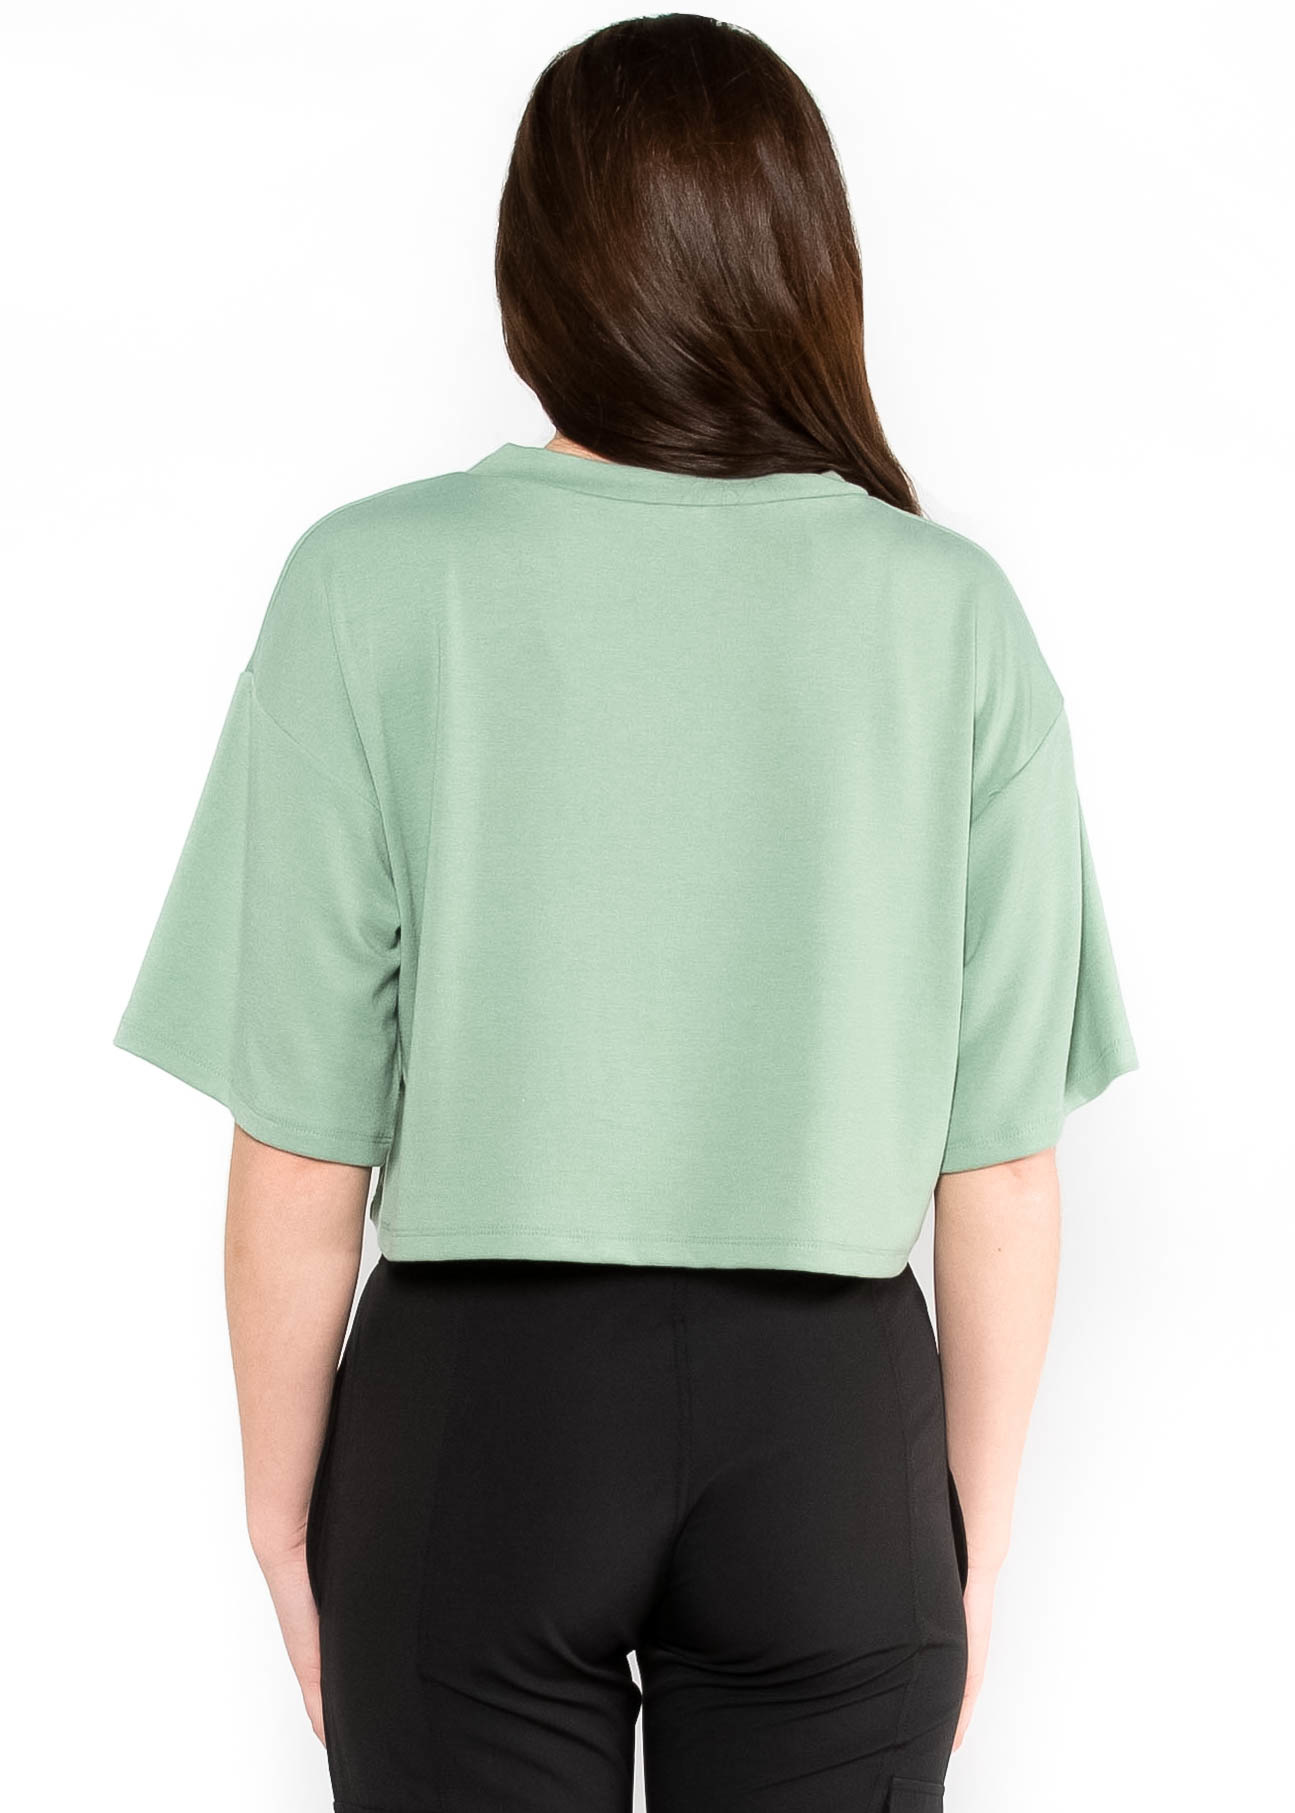 TRAINING DAY CROPPED T-SHIRT